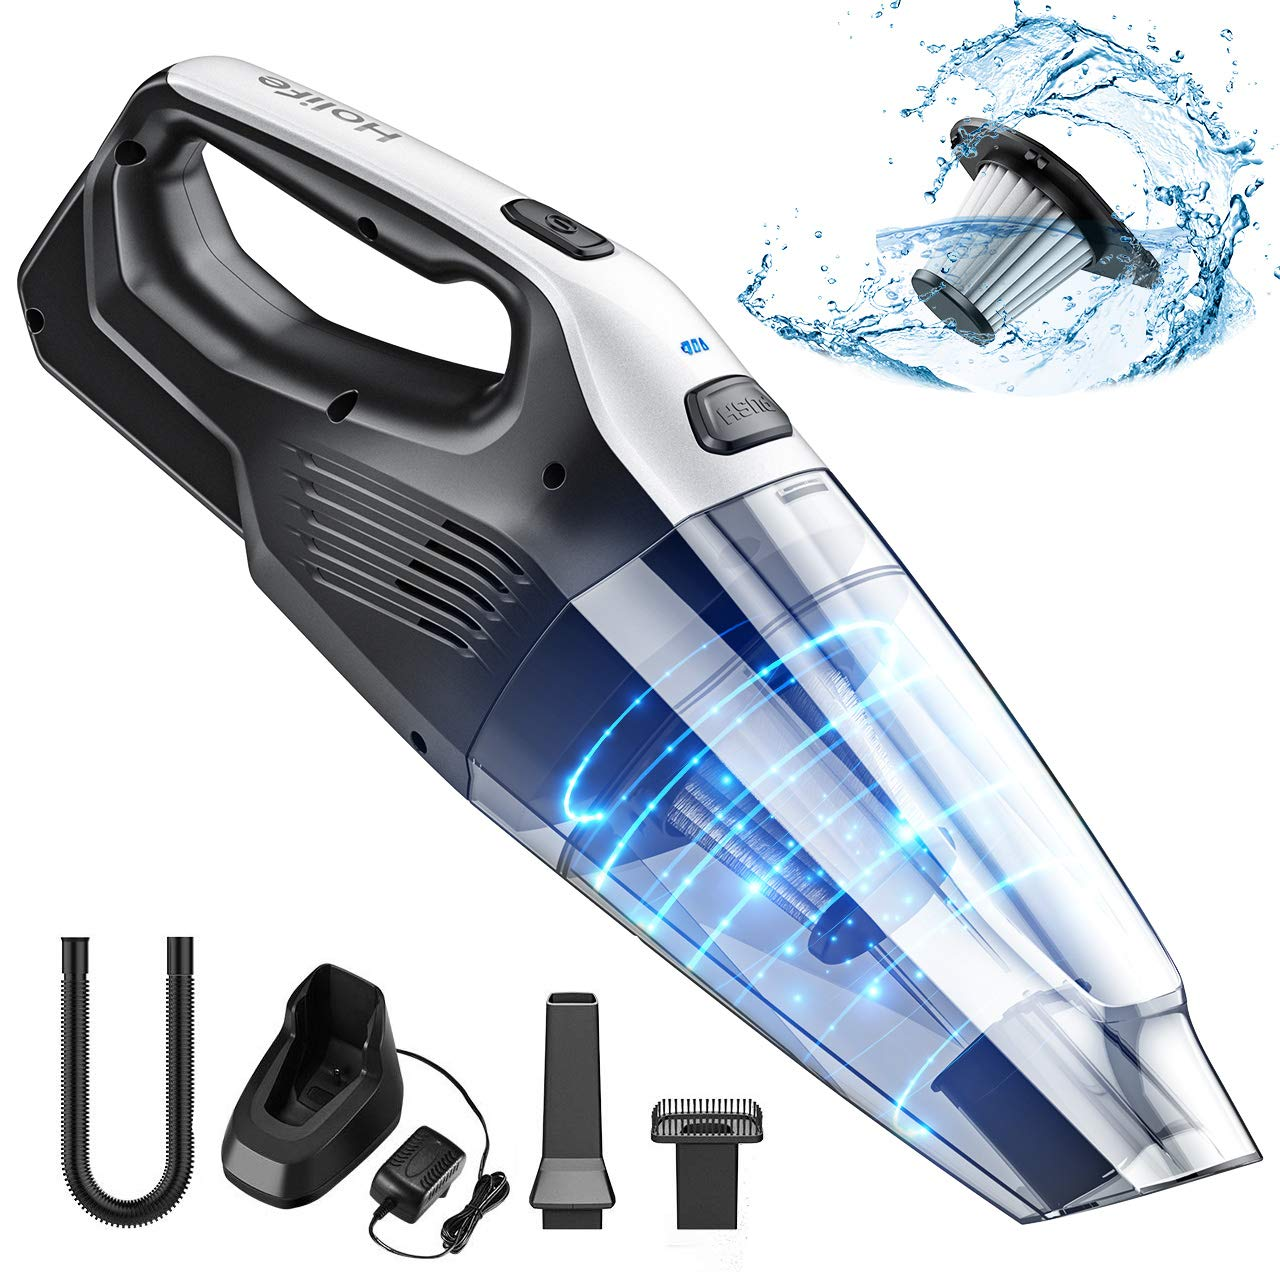 Holife Rechargeable Handheld Vacuum Cordless with Stainless Steel Filter (500 Times Washed), Powerful Cyclonic Suction Lightweight Hand Held Vac for Car by Holife